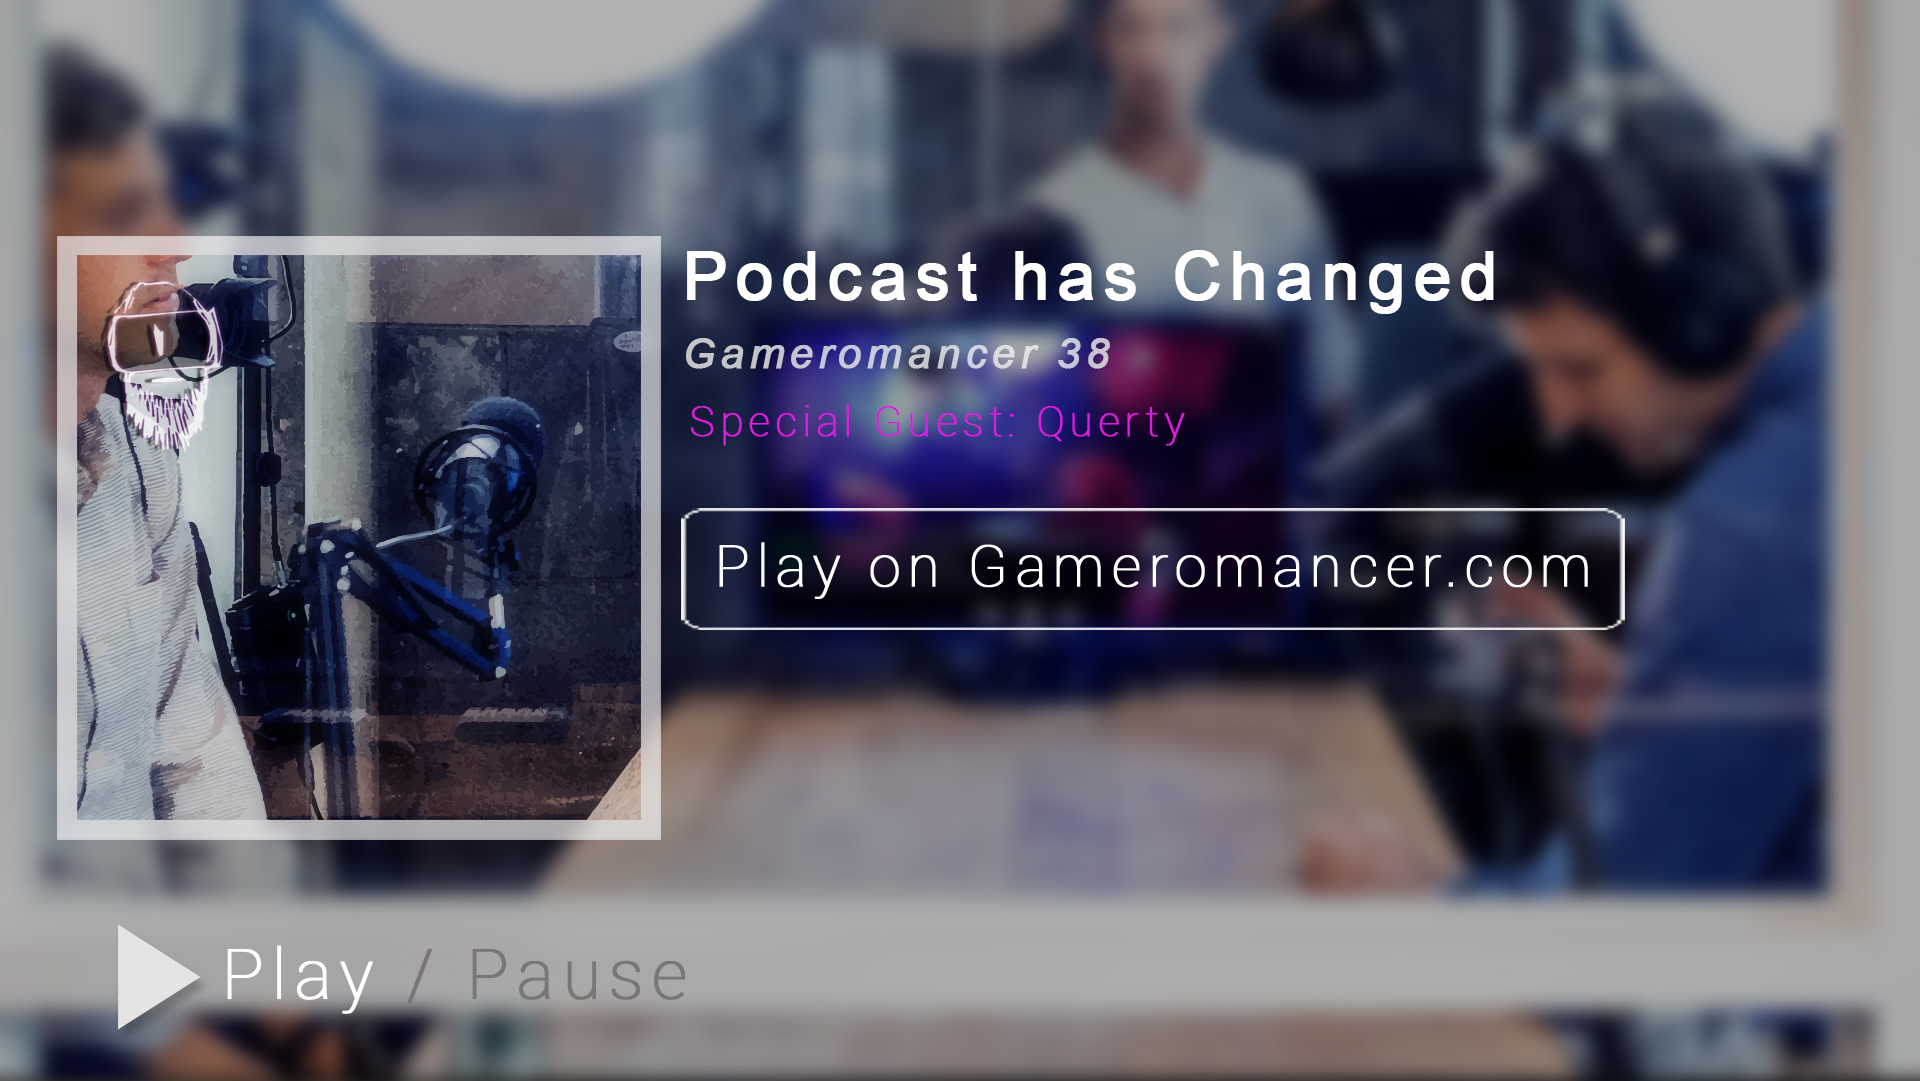 Ep. 38: Podcast has Changed